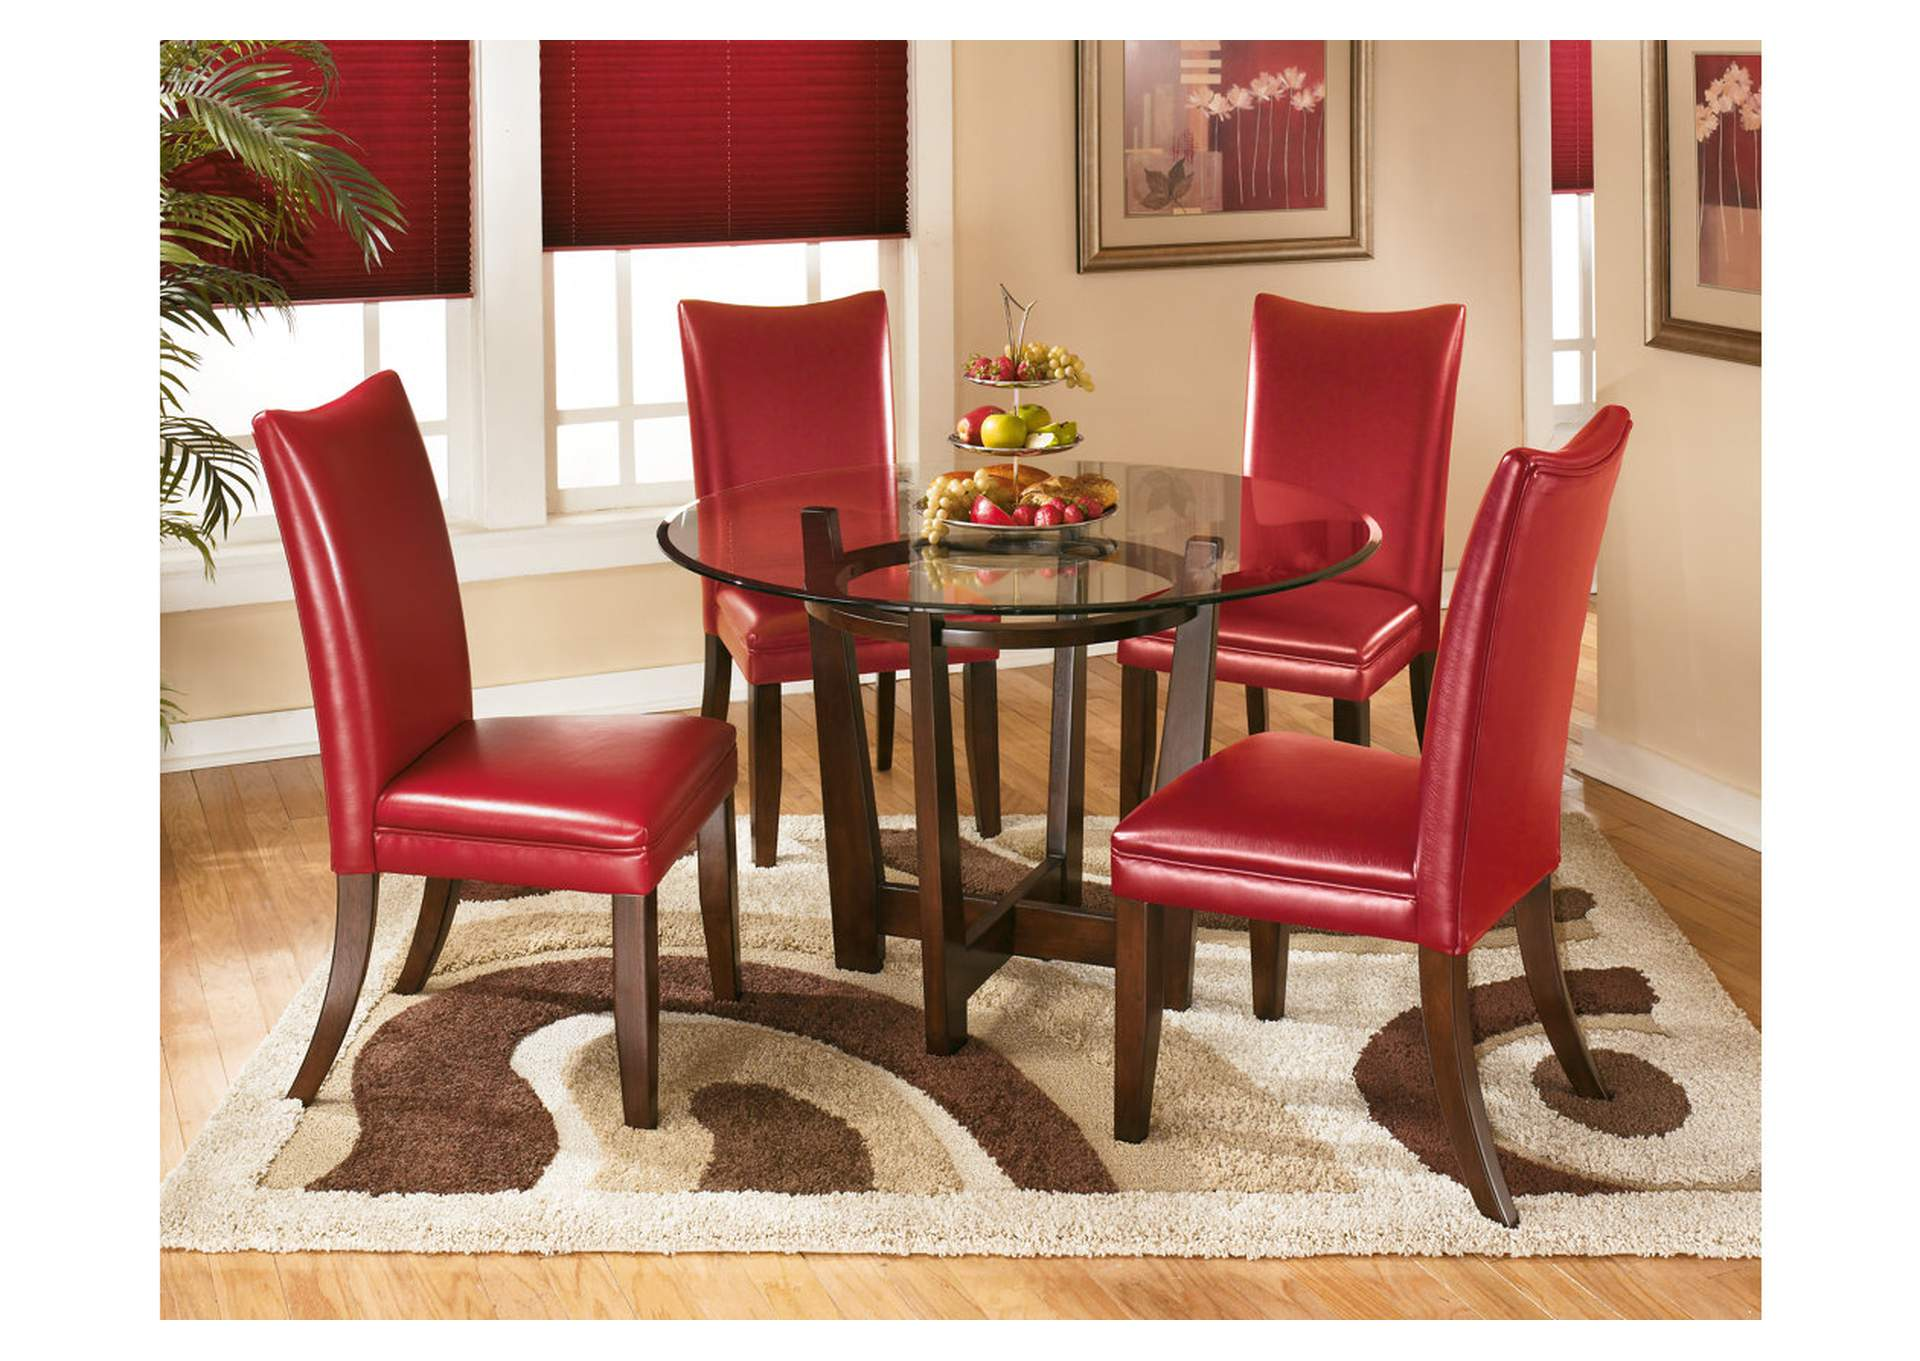 Roses flooring and furniture charell round dining table w for Red dining room chairs